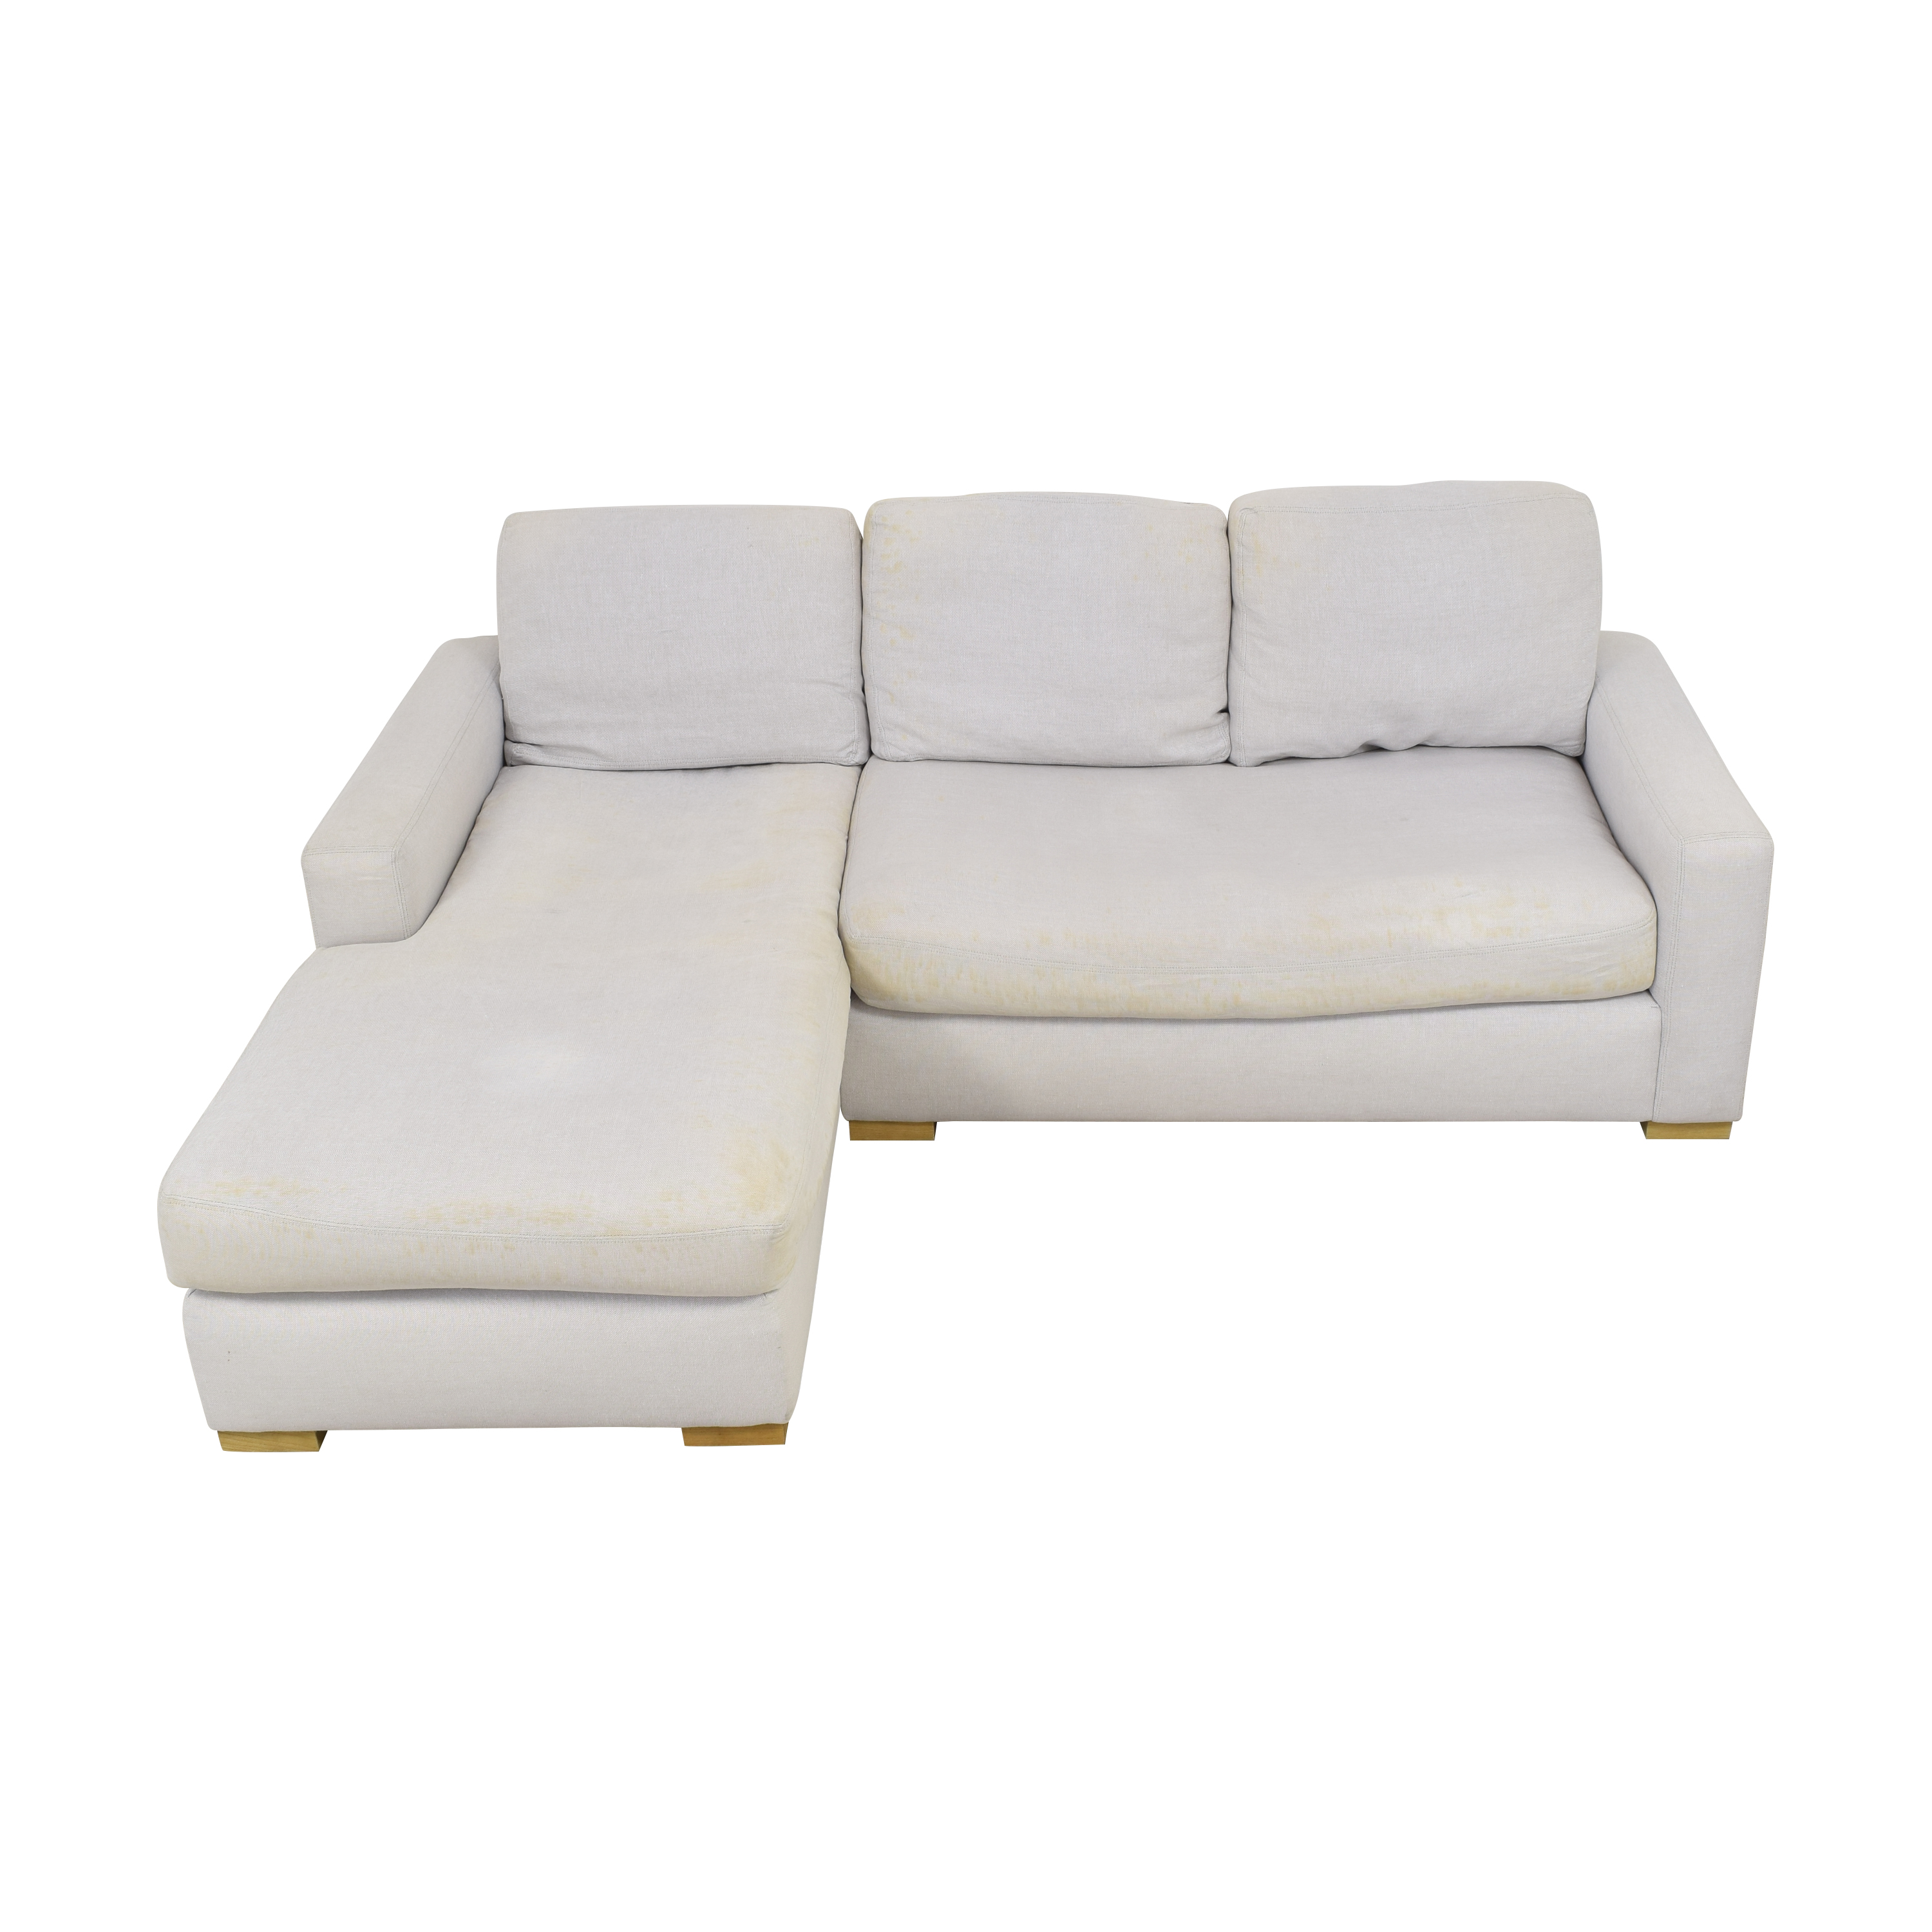 Restoration Hardware Restoration Hardware Chaise Sectional Sofa  for sale